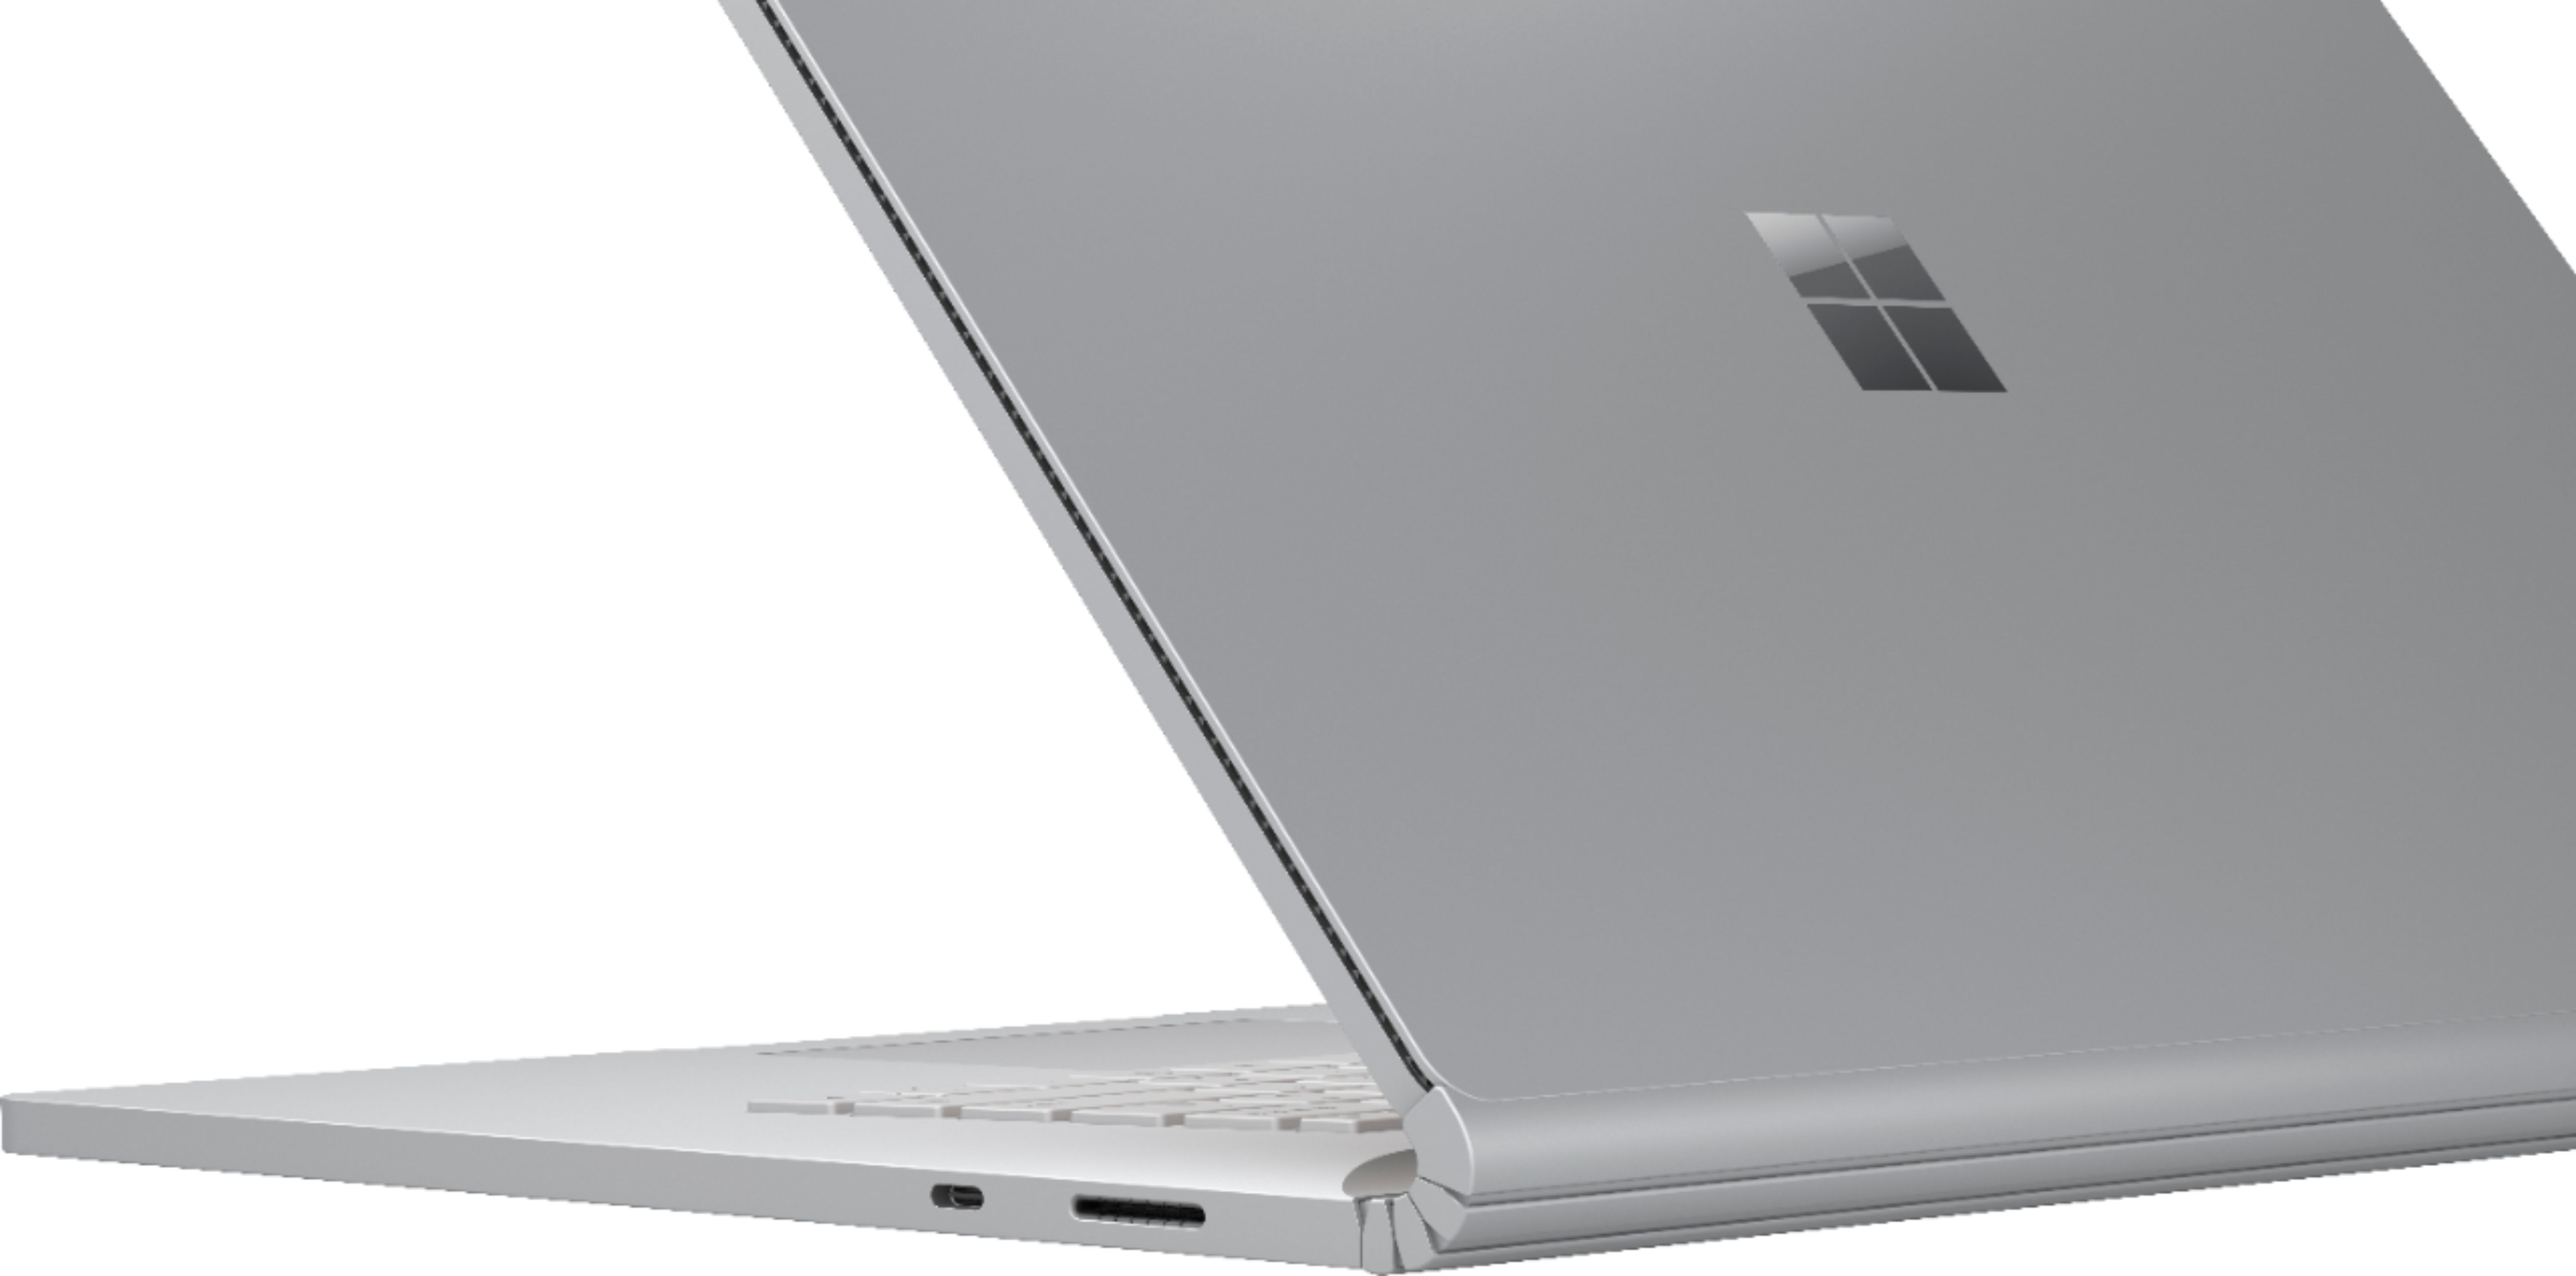 """Alt View Zoom 12. Microsoft - Surface Book 3 15"""" Touch-Screen PixelSense™ - 2-in-1 Laptop - Intel Core i7 - 32GB Memory - 1TB SSD - Platinum."""